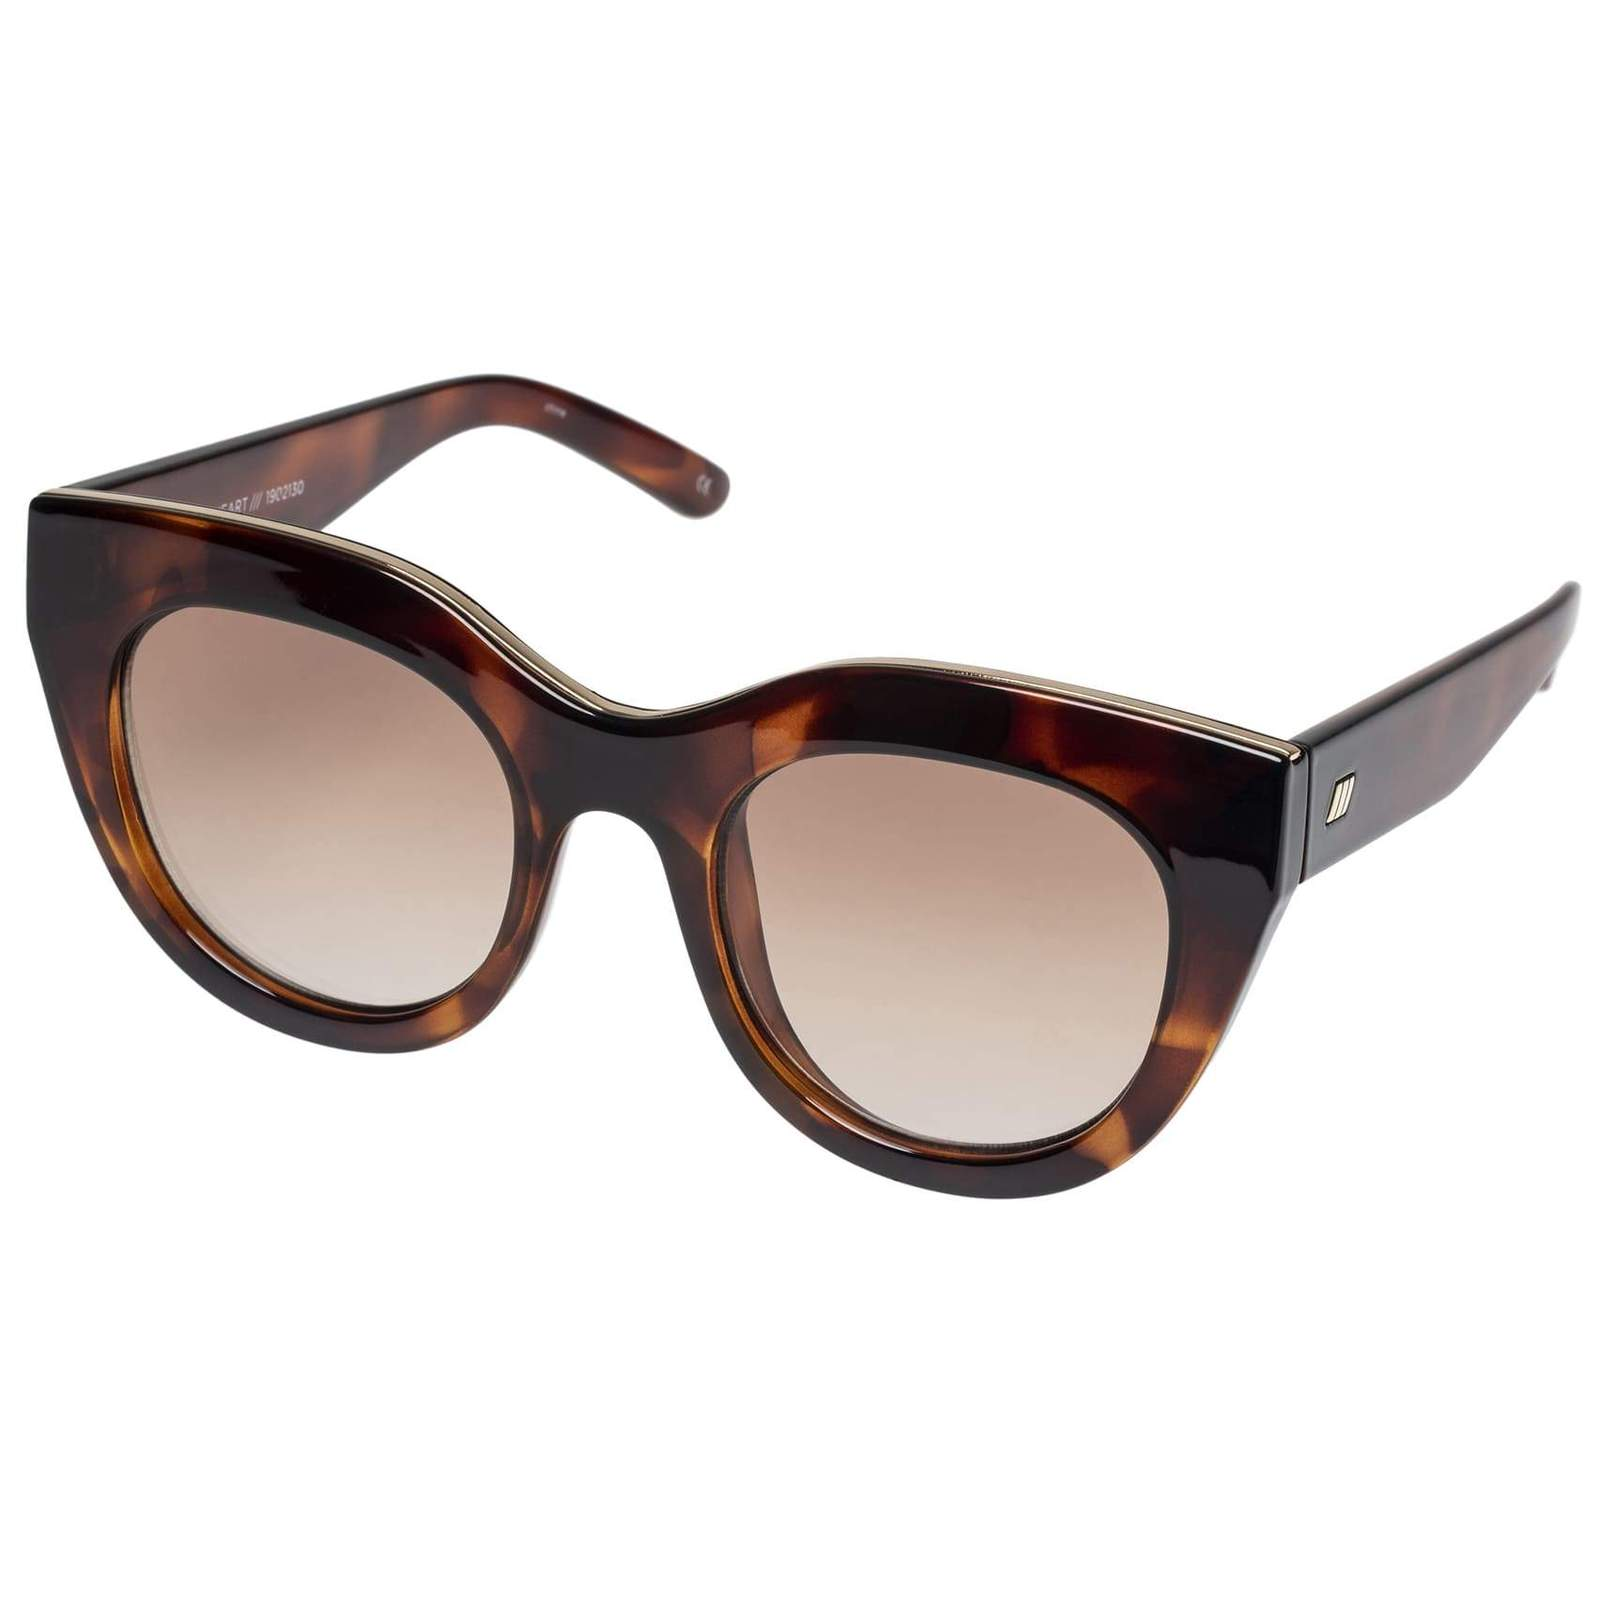 Le Specs- Air Heart- Toffee Tort